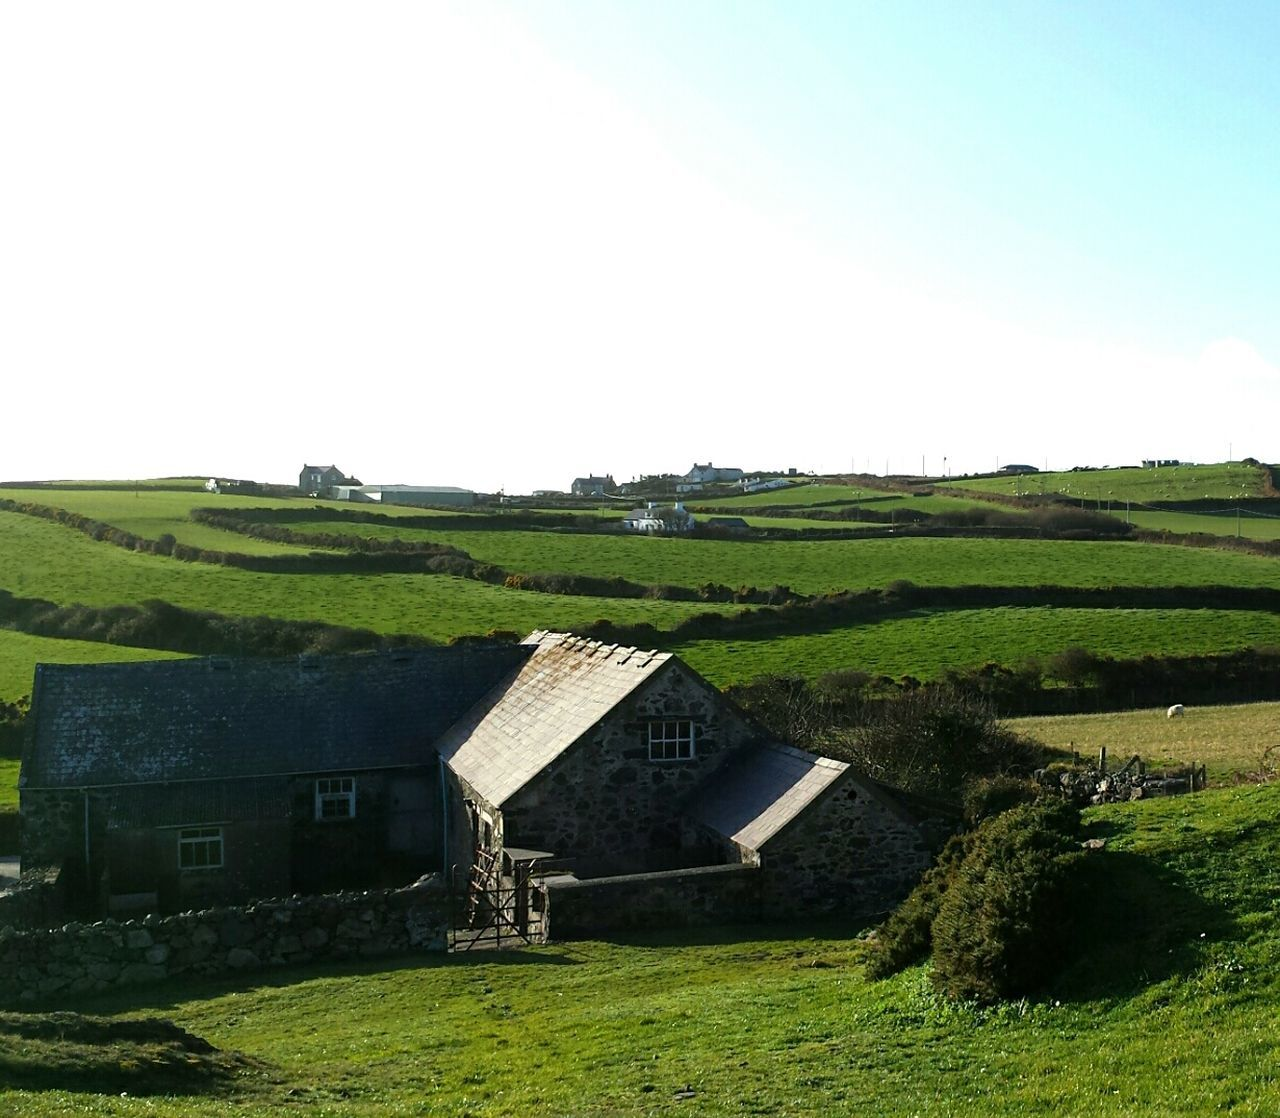 Farmhouse Rural Scene Agriculture Cottage Non-urban Scene Grass Farm Field Architecture Sky Green Nature Rural House North Wales Always Green